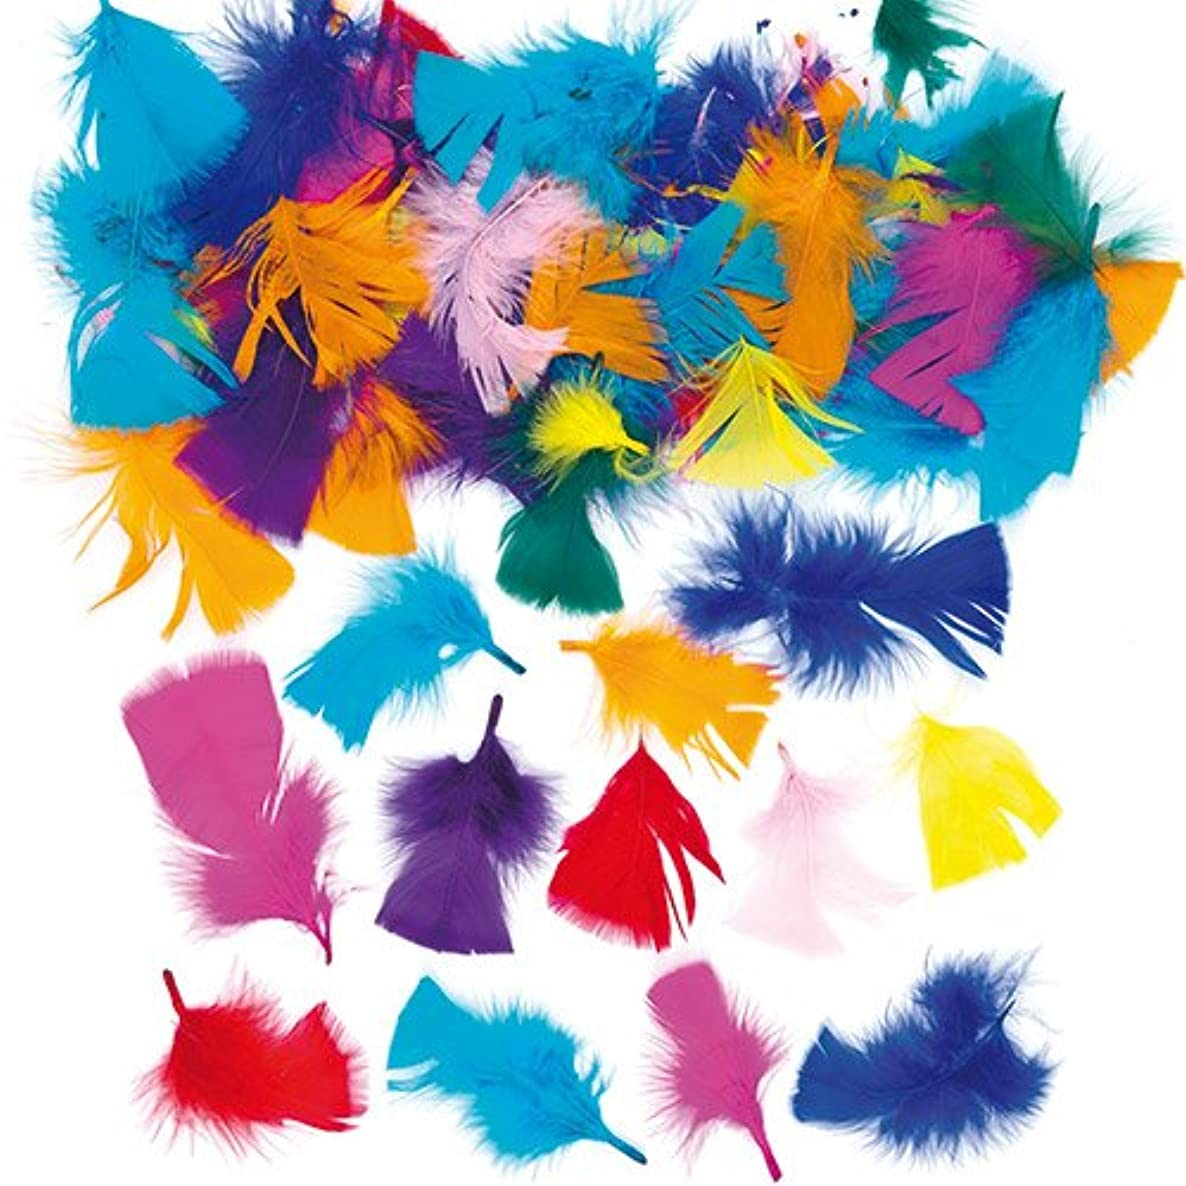 Baker Ross Assorted Bright Colors Collage Craft Feathers Children's Art Supplies | 130 Feathers | Weight: 0.7oz (20g)